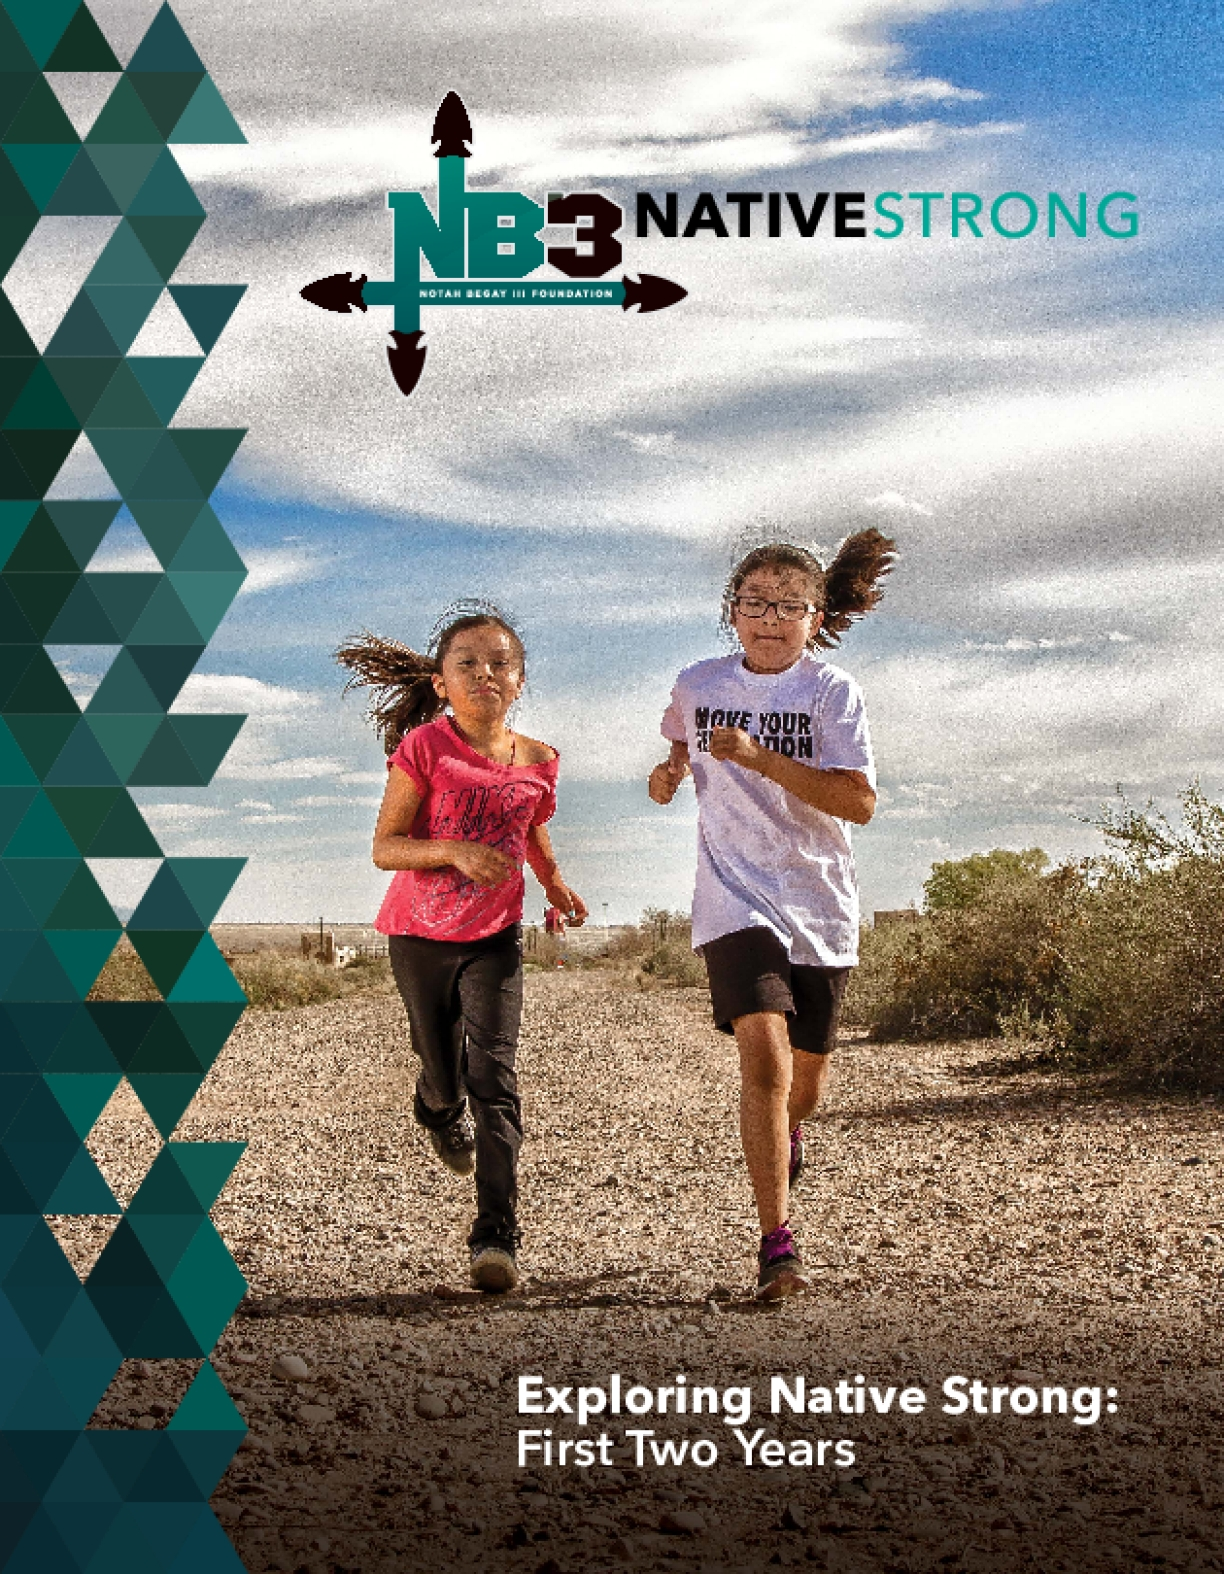 Exploring Native Strong: First Two Years